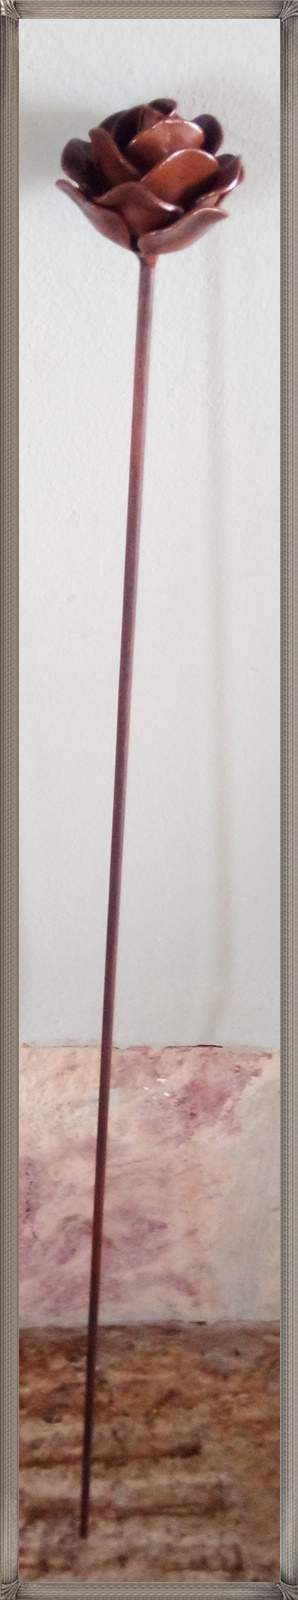 ac162-rose-large-in-stick-1m